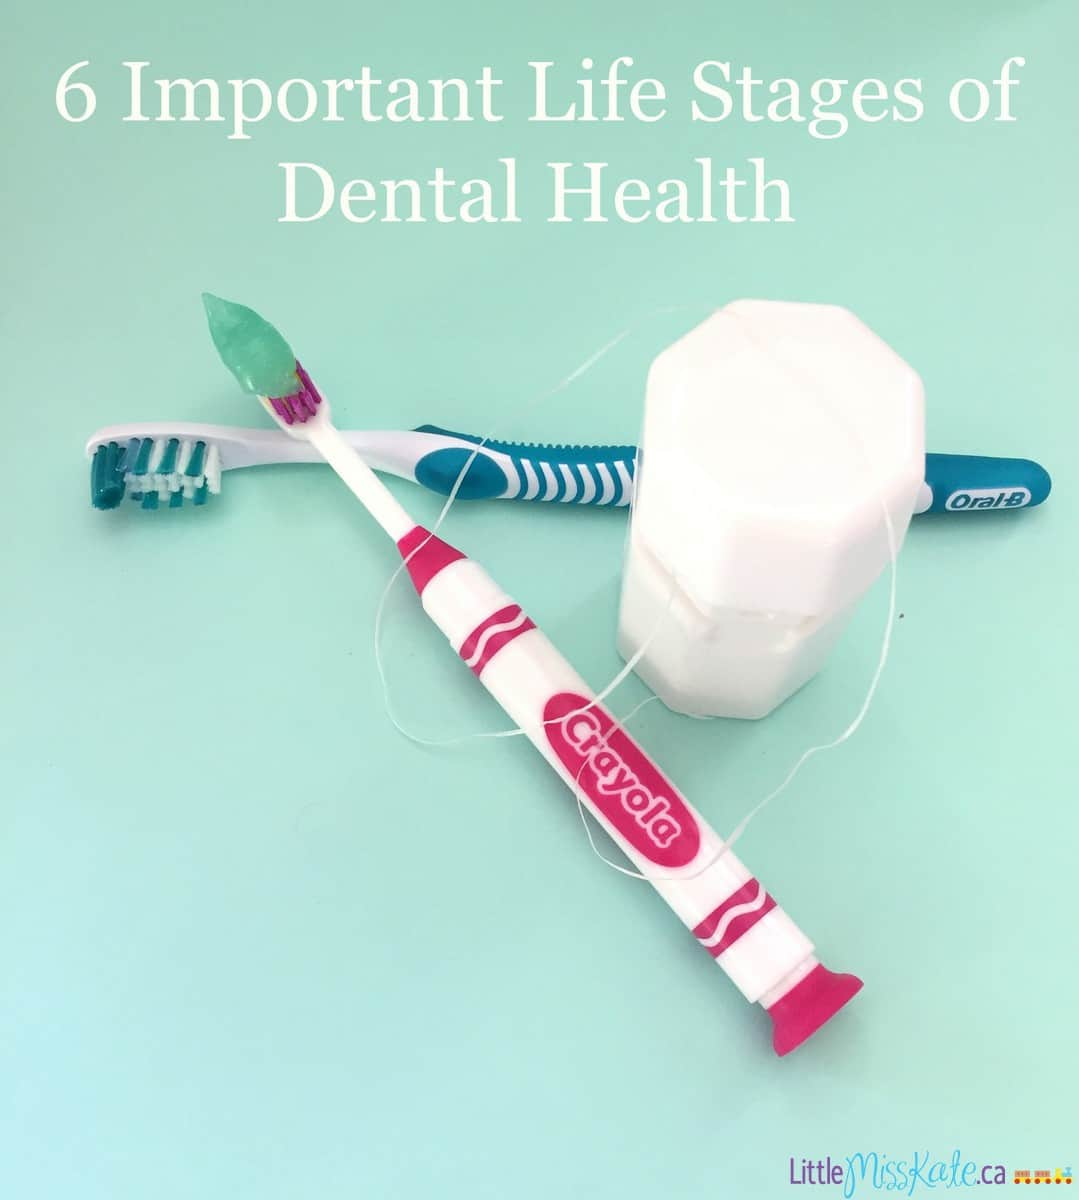 6 Important Life Stages of Dental Health